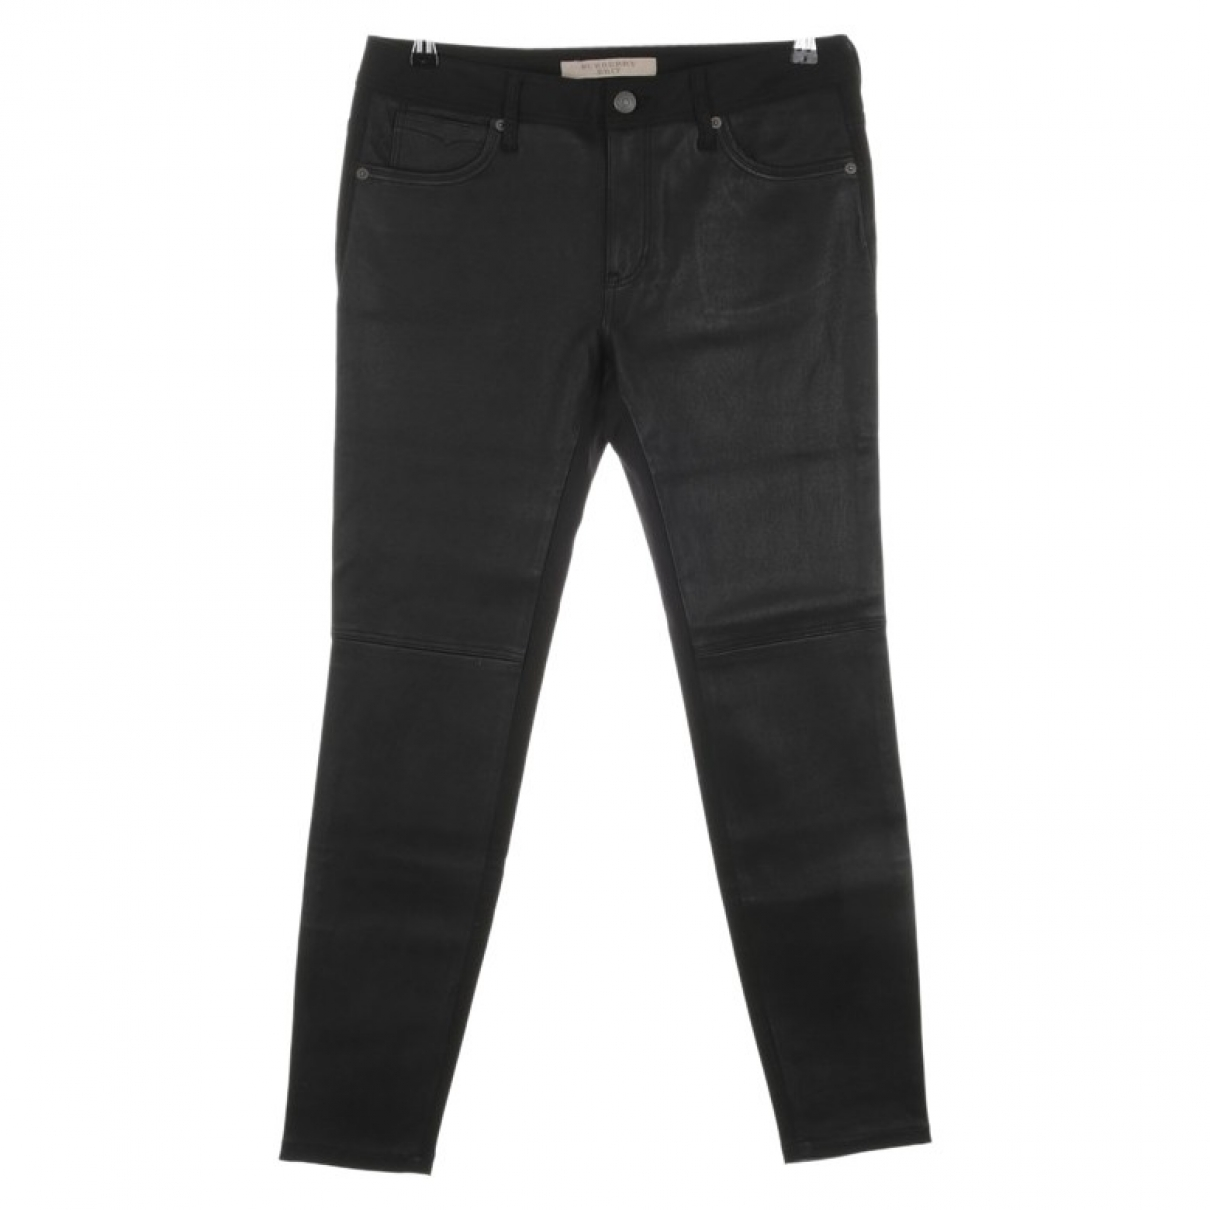 Burberry \N Black Cotton Trousers for Women 40 FR